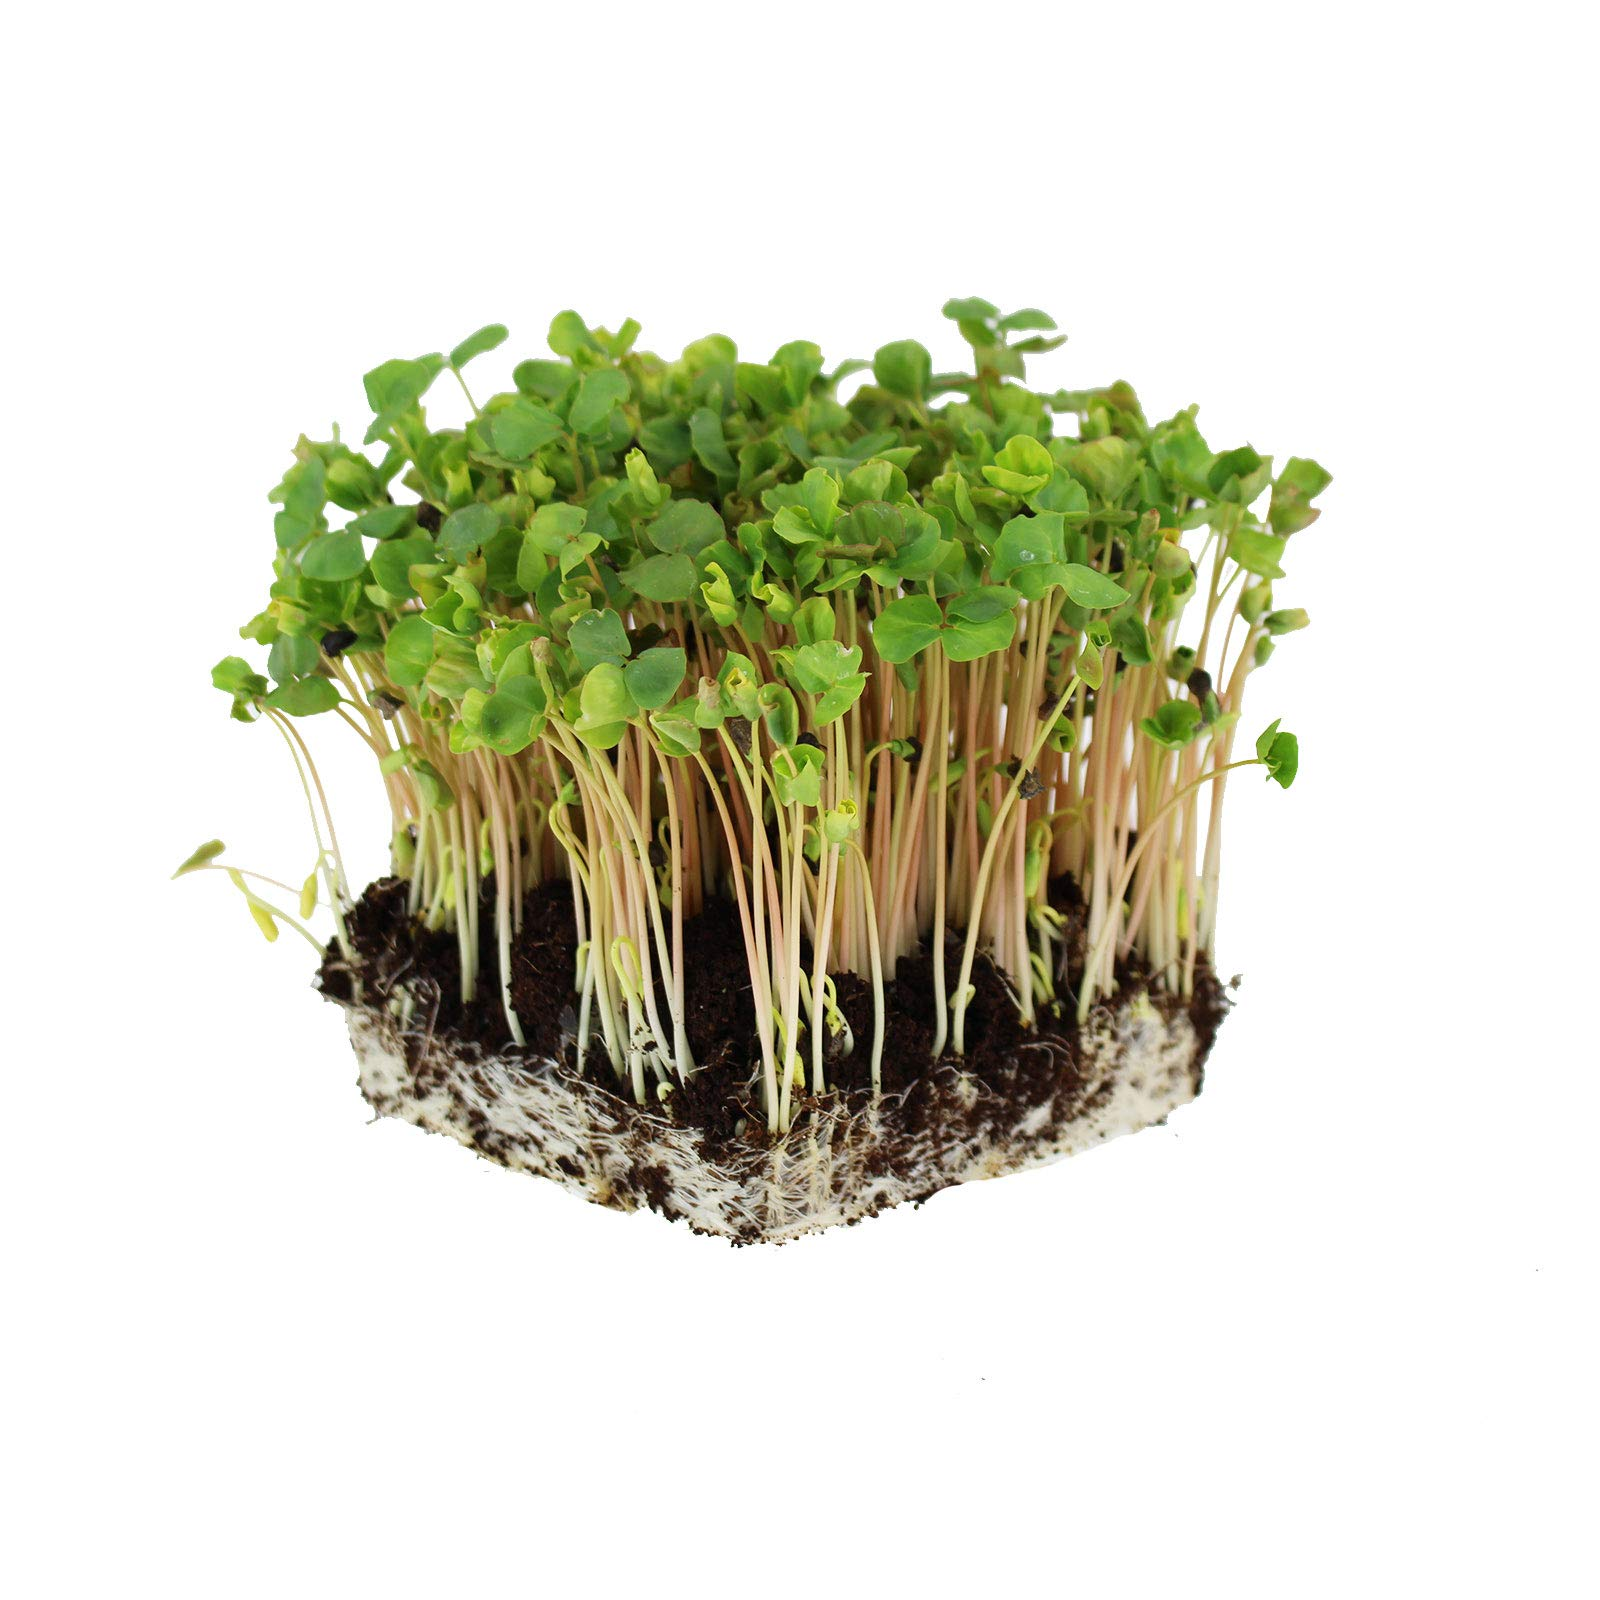 Soil Based Microgreens Seeds Assortment: Micro Greens Seed Collection: Sunflower, Buckwheat, Cilantro, Dun Pea, Rainbow Swiss Chard, Detroit Beets by Handy Pantry (Image #3)